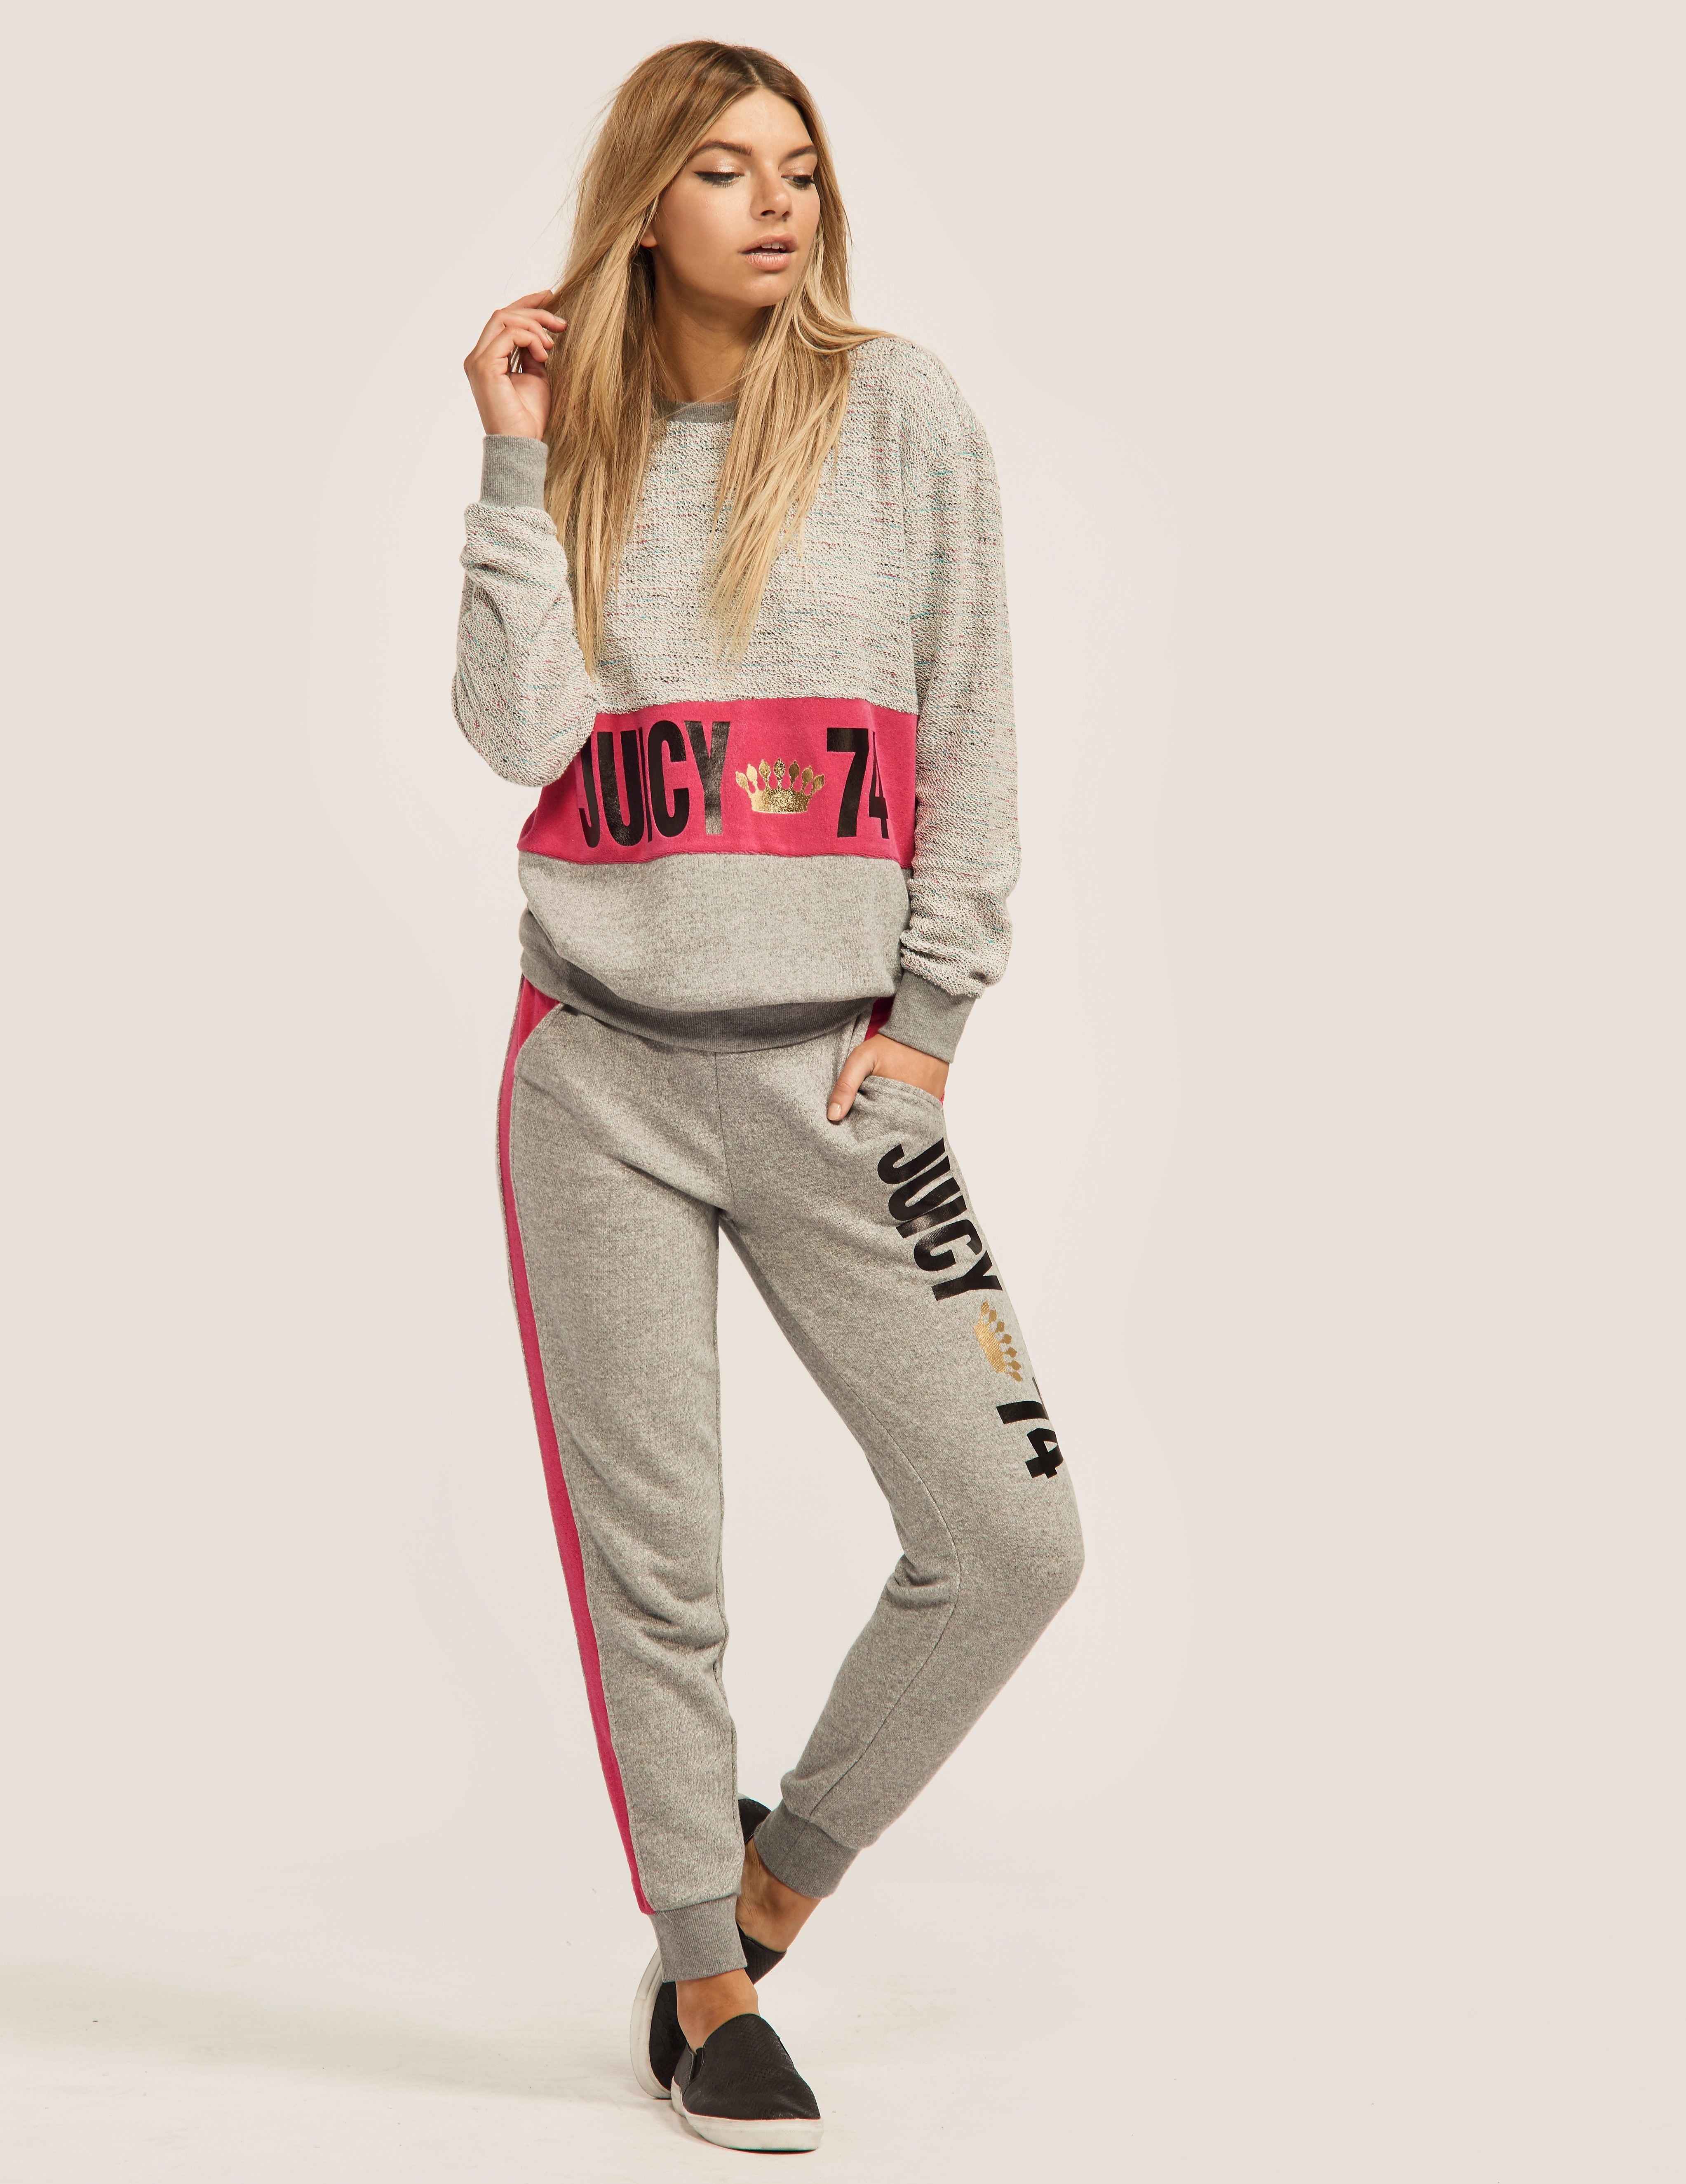 Juicy Couture French Terry Juicy 74 Pant